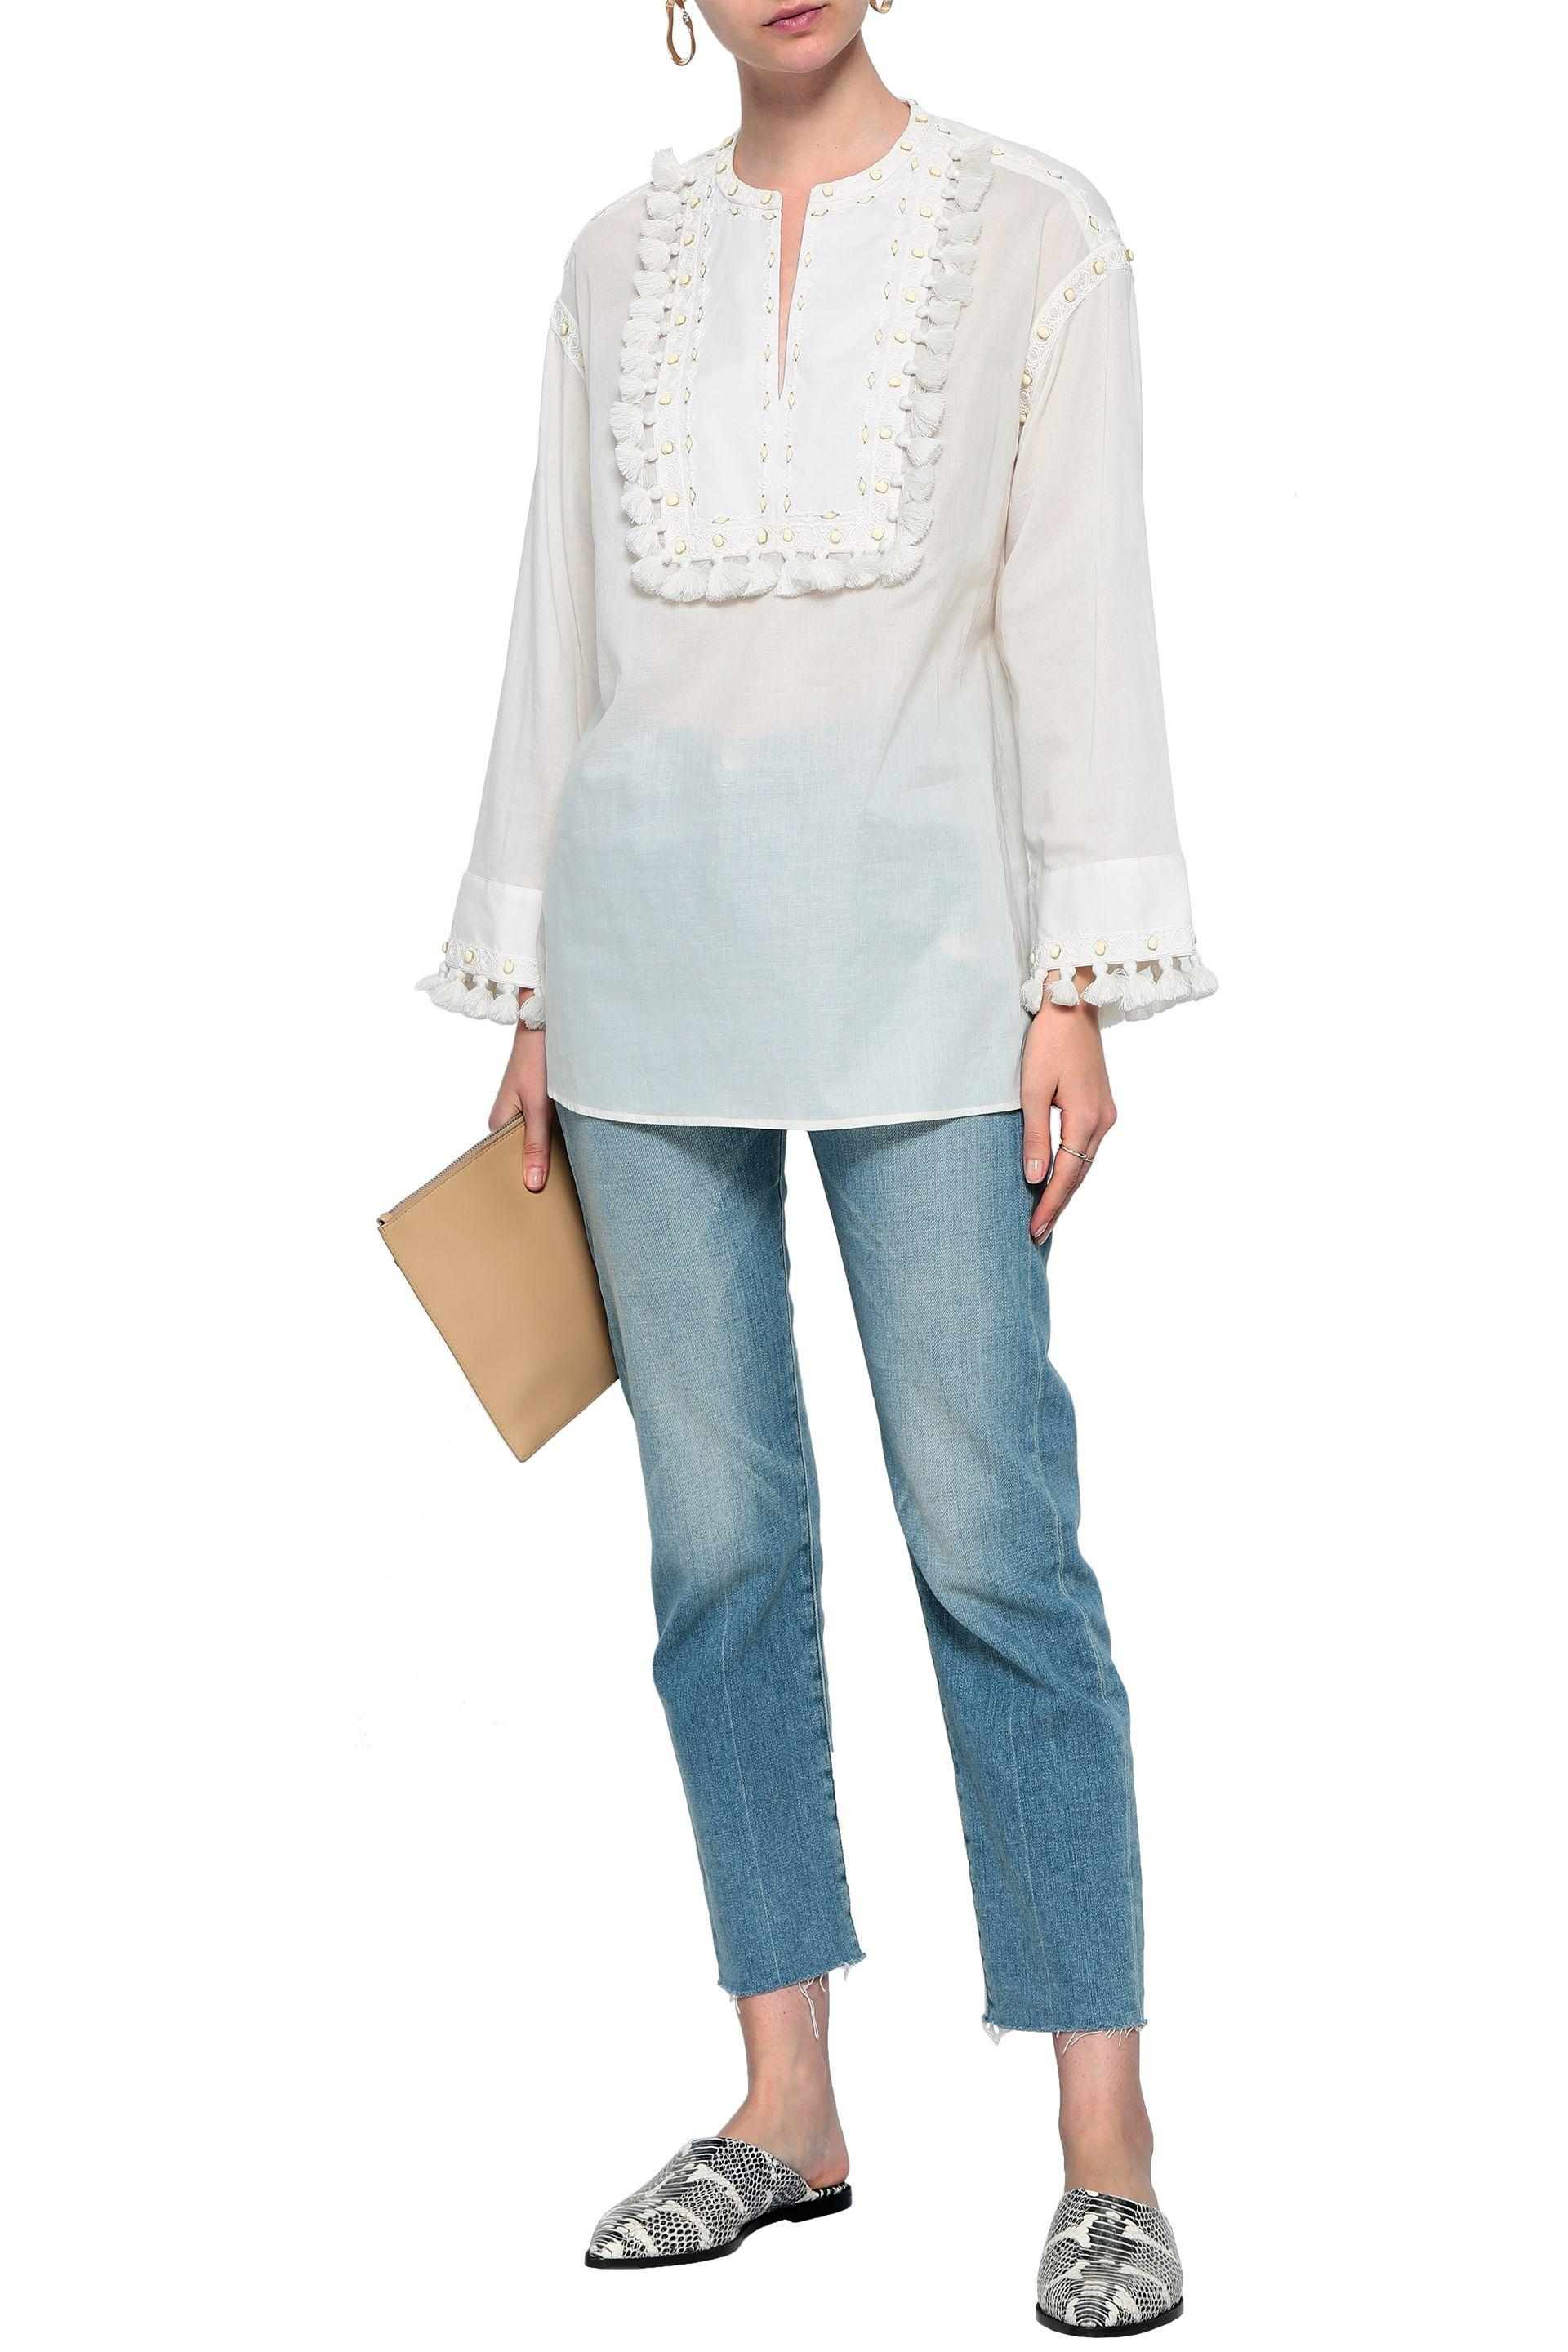 bb350971542 Tory Burch - White Tasseled Embroidered Cotton-gauze Top - Lyst. View  fullscreen